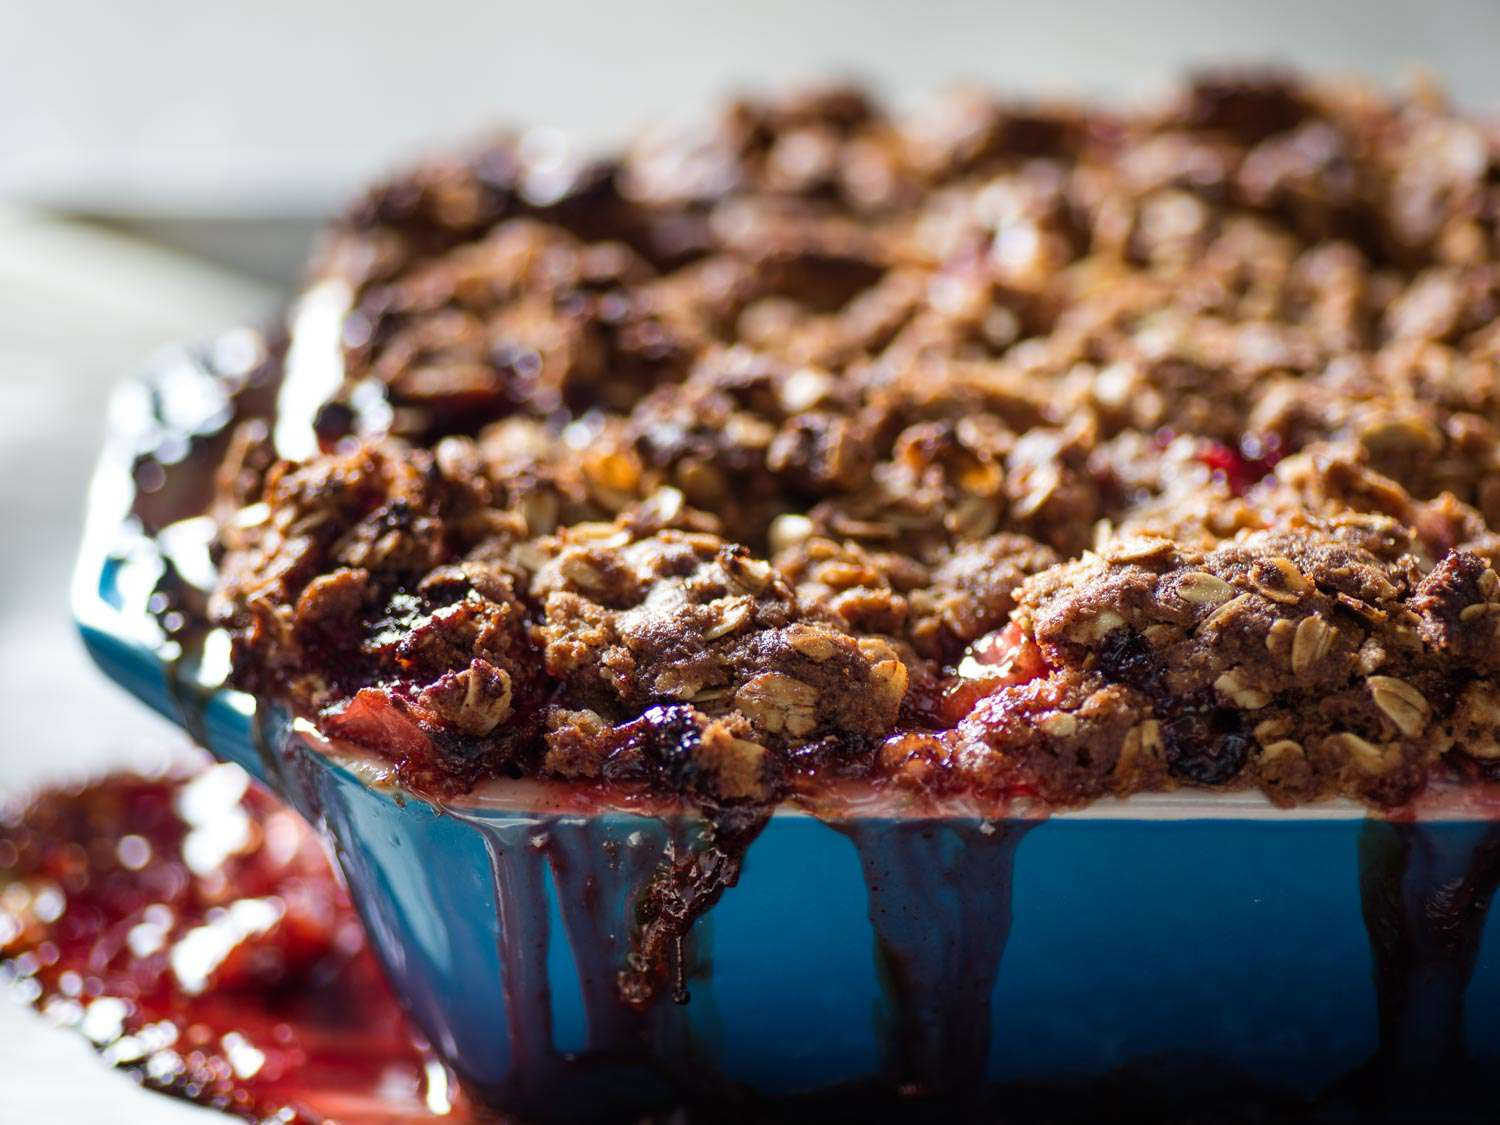 Close-up of a blue ceramic baking dish of strawberry-rhubarb crisp, with fruit filling spilling over the side